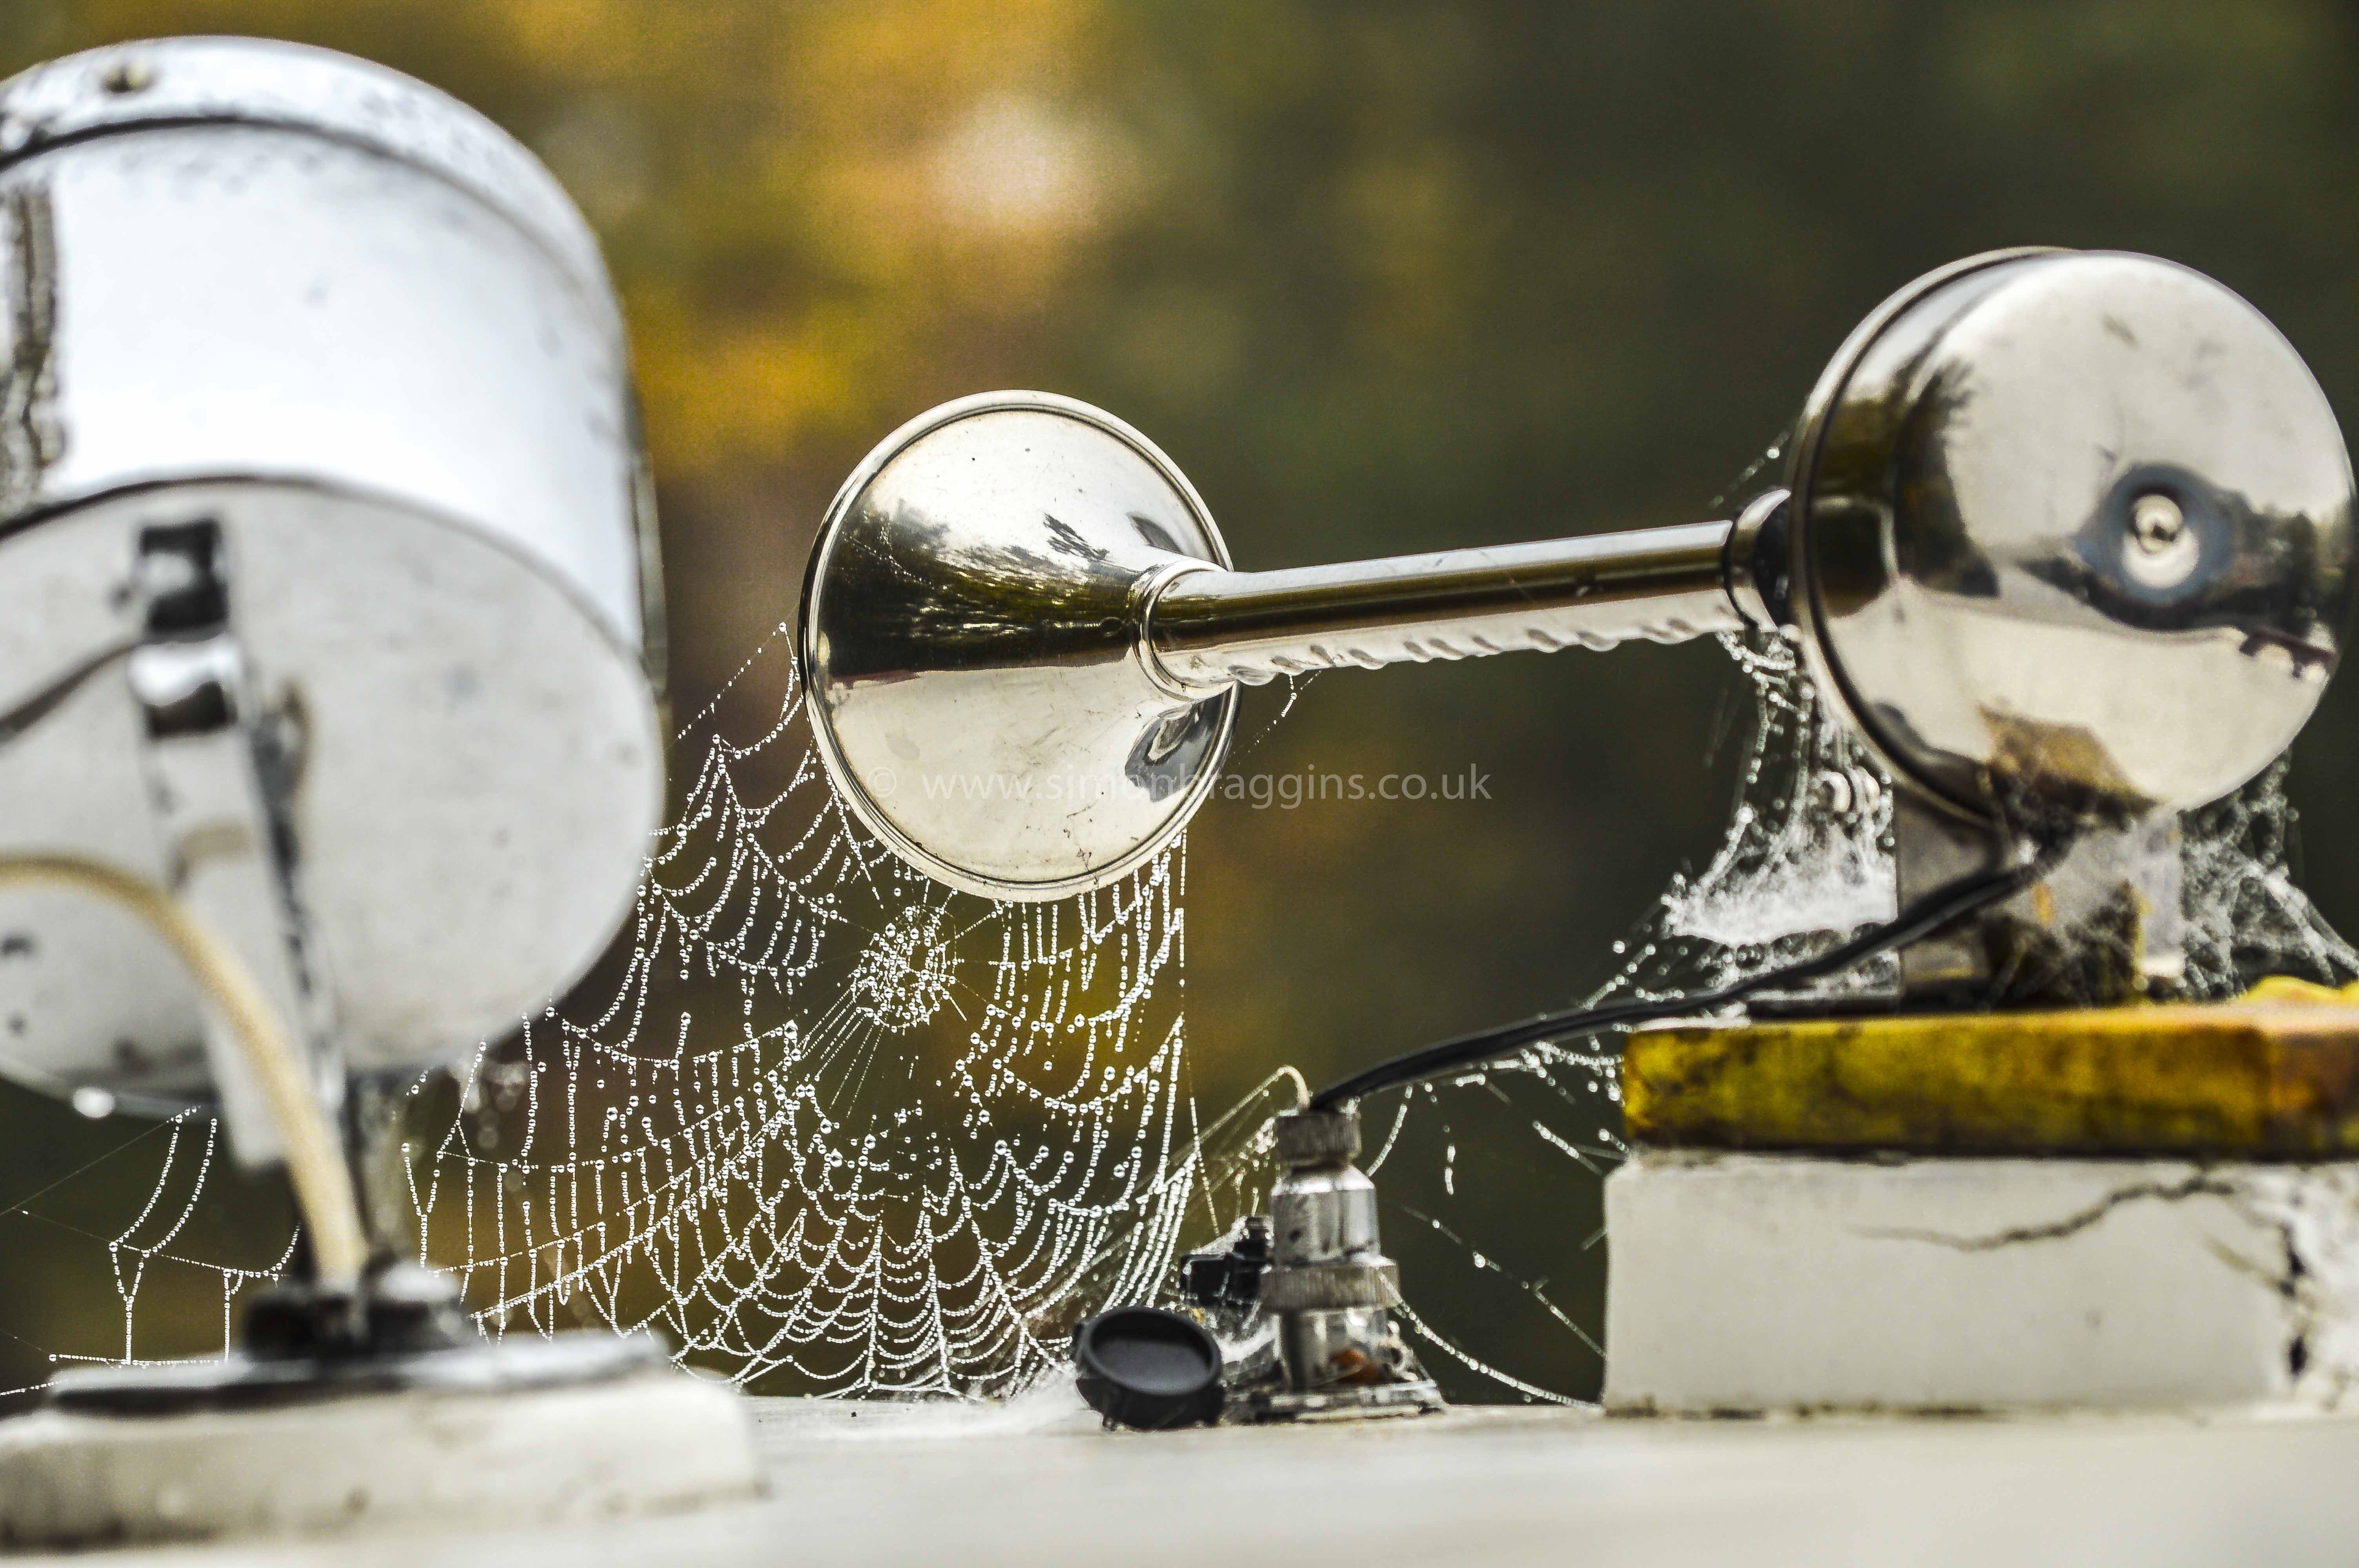 Dewy Web: A dewy spider web appears to flow out from a barge's horn - Tottenham Hale, October 2016